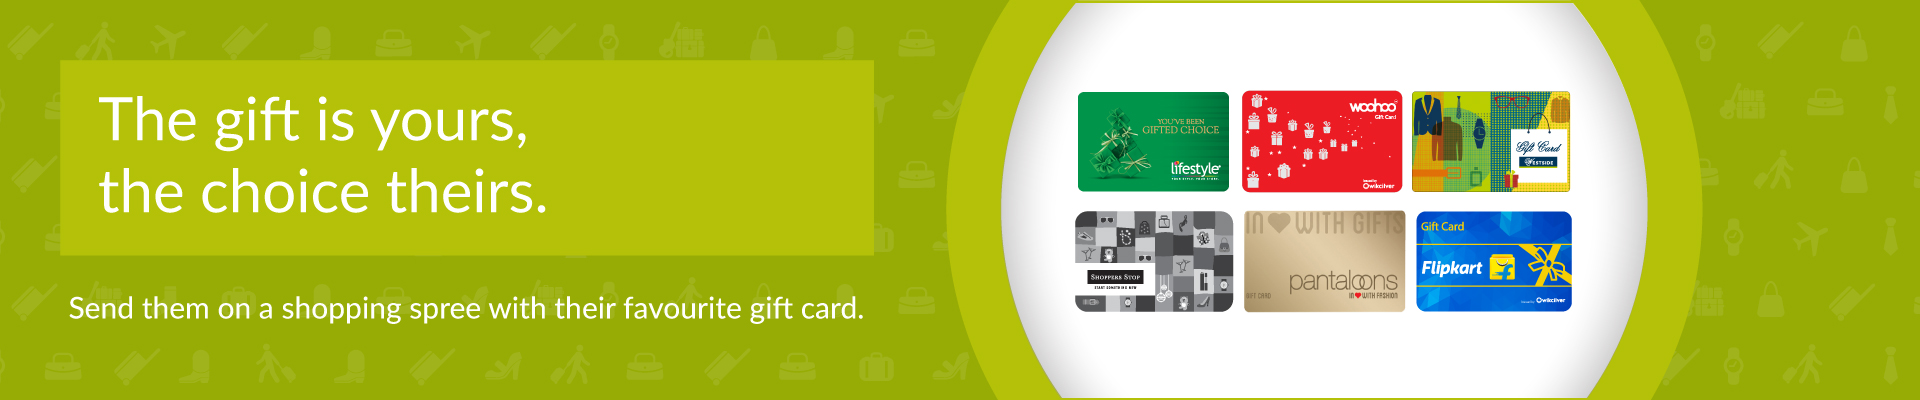 Gift Cards & Gift Vouchers - Buy a Gift Card from 100+ Brands ...